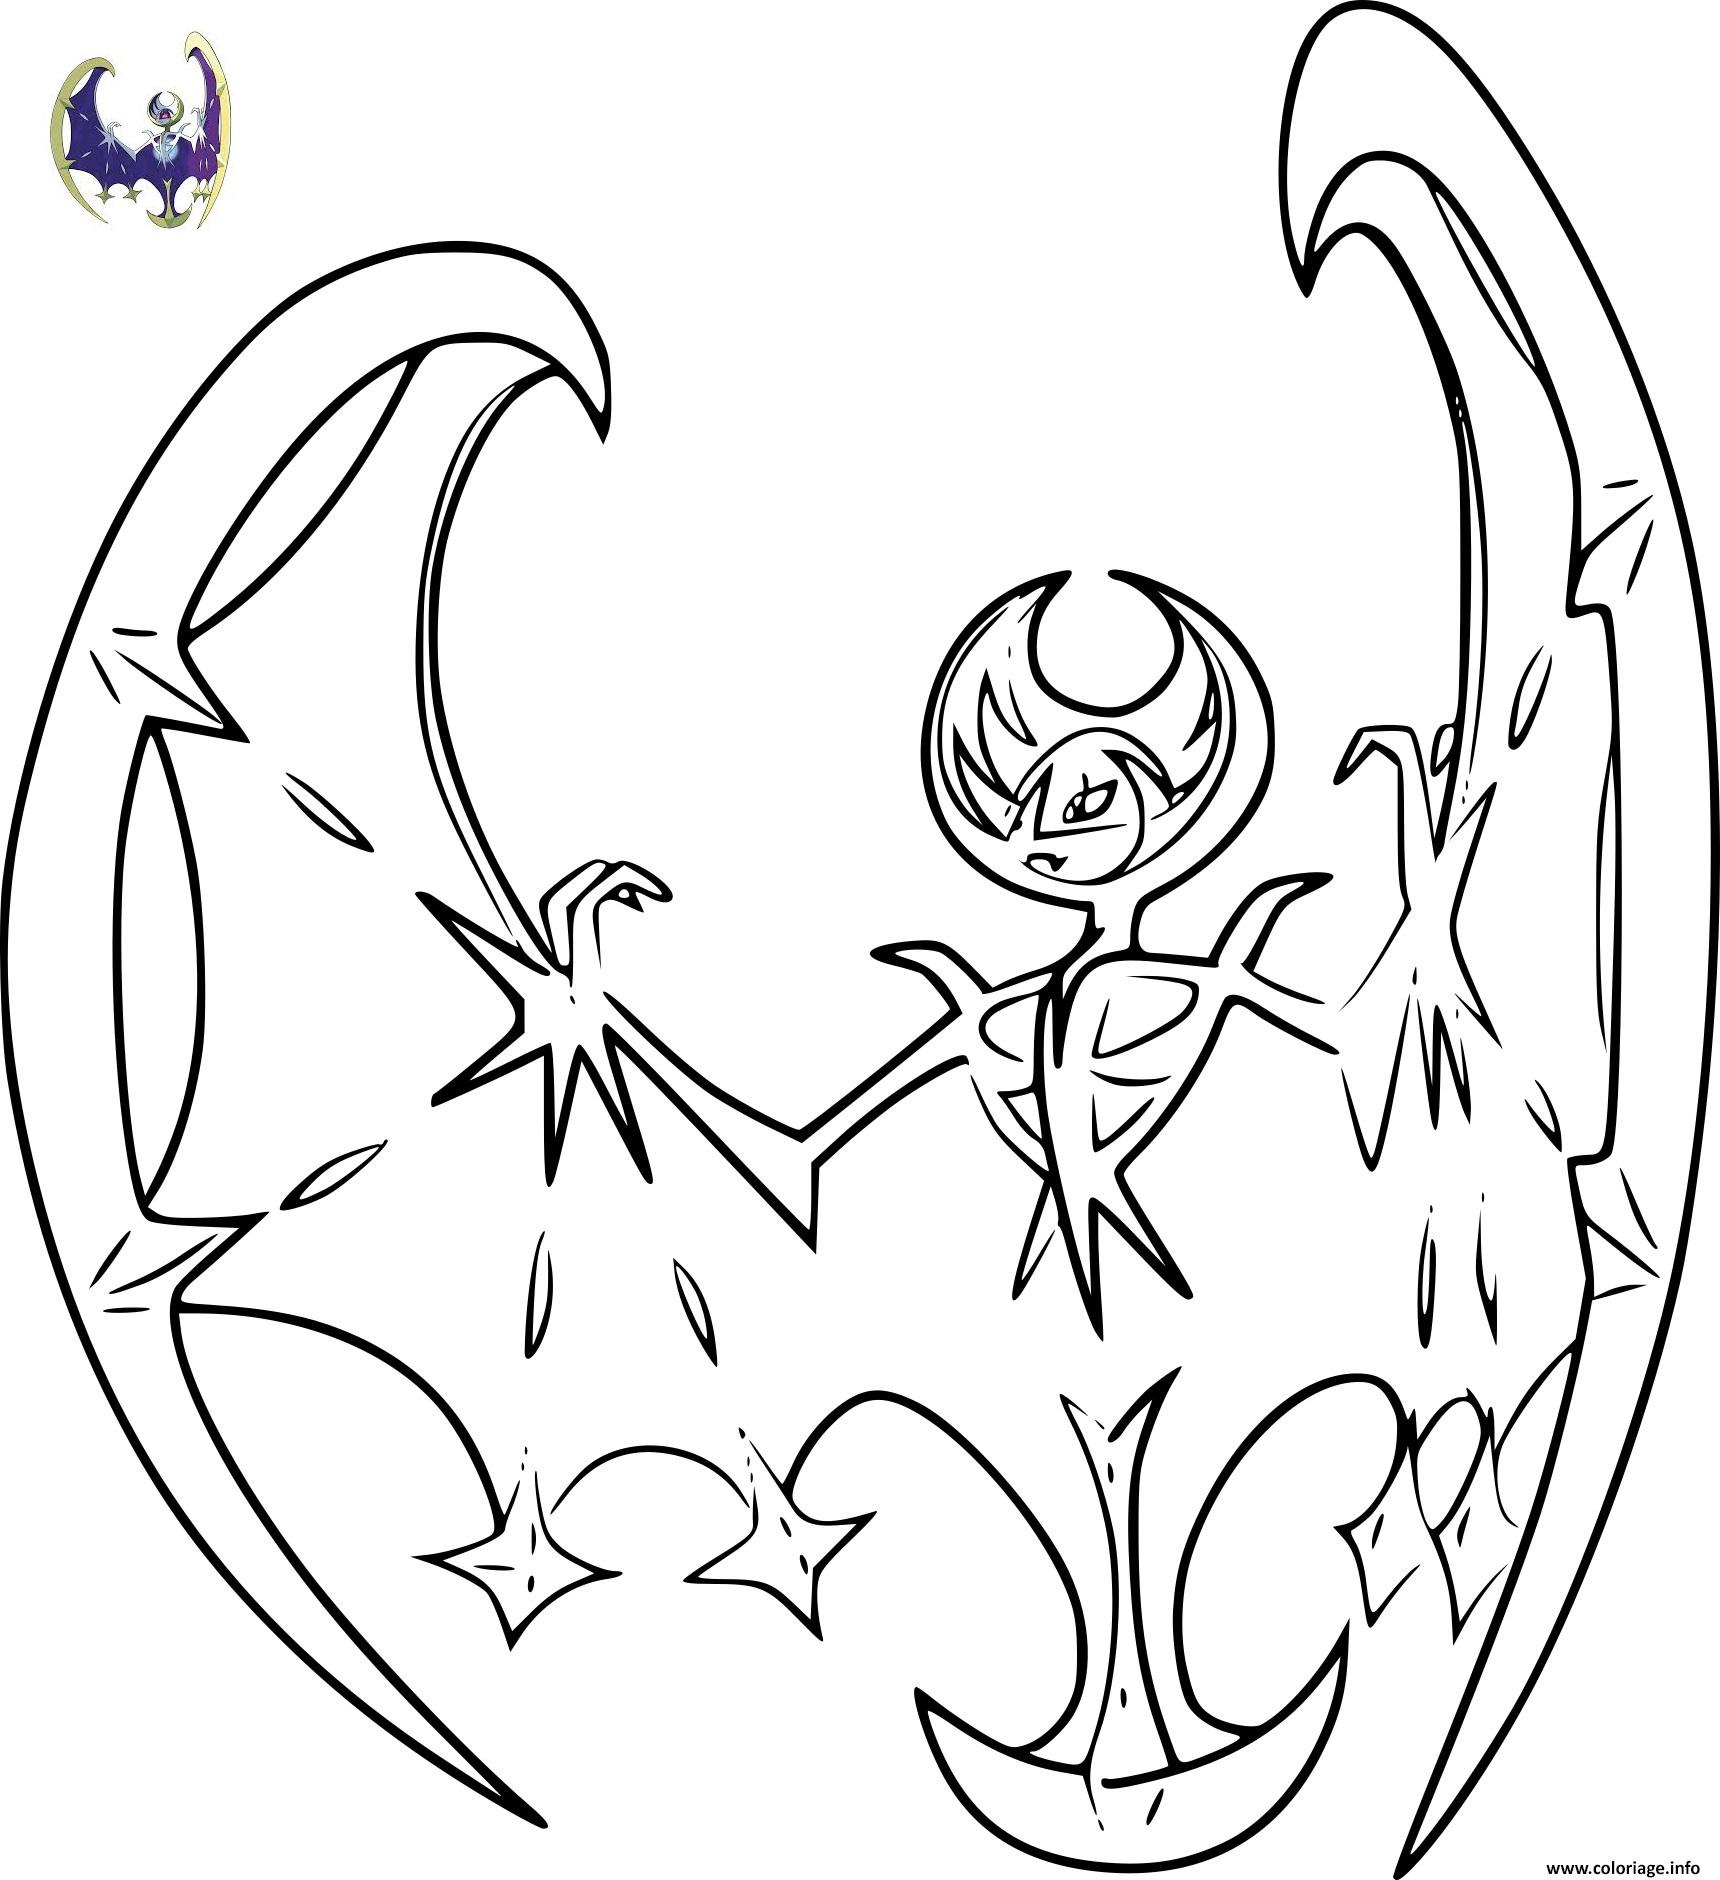 Coloriage pokemon lunala - Coloriage de pokemon a imprimer ...